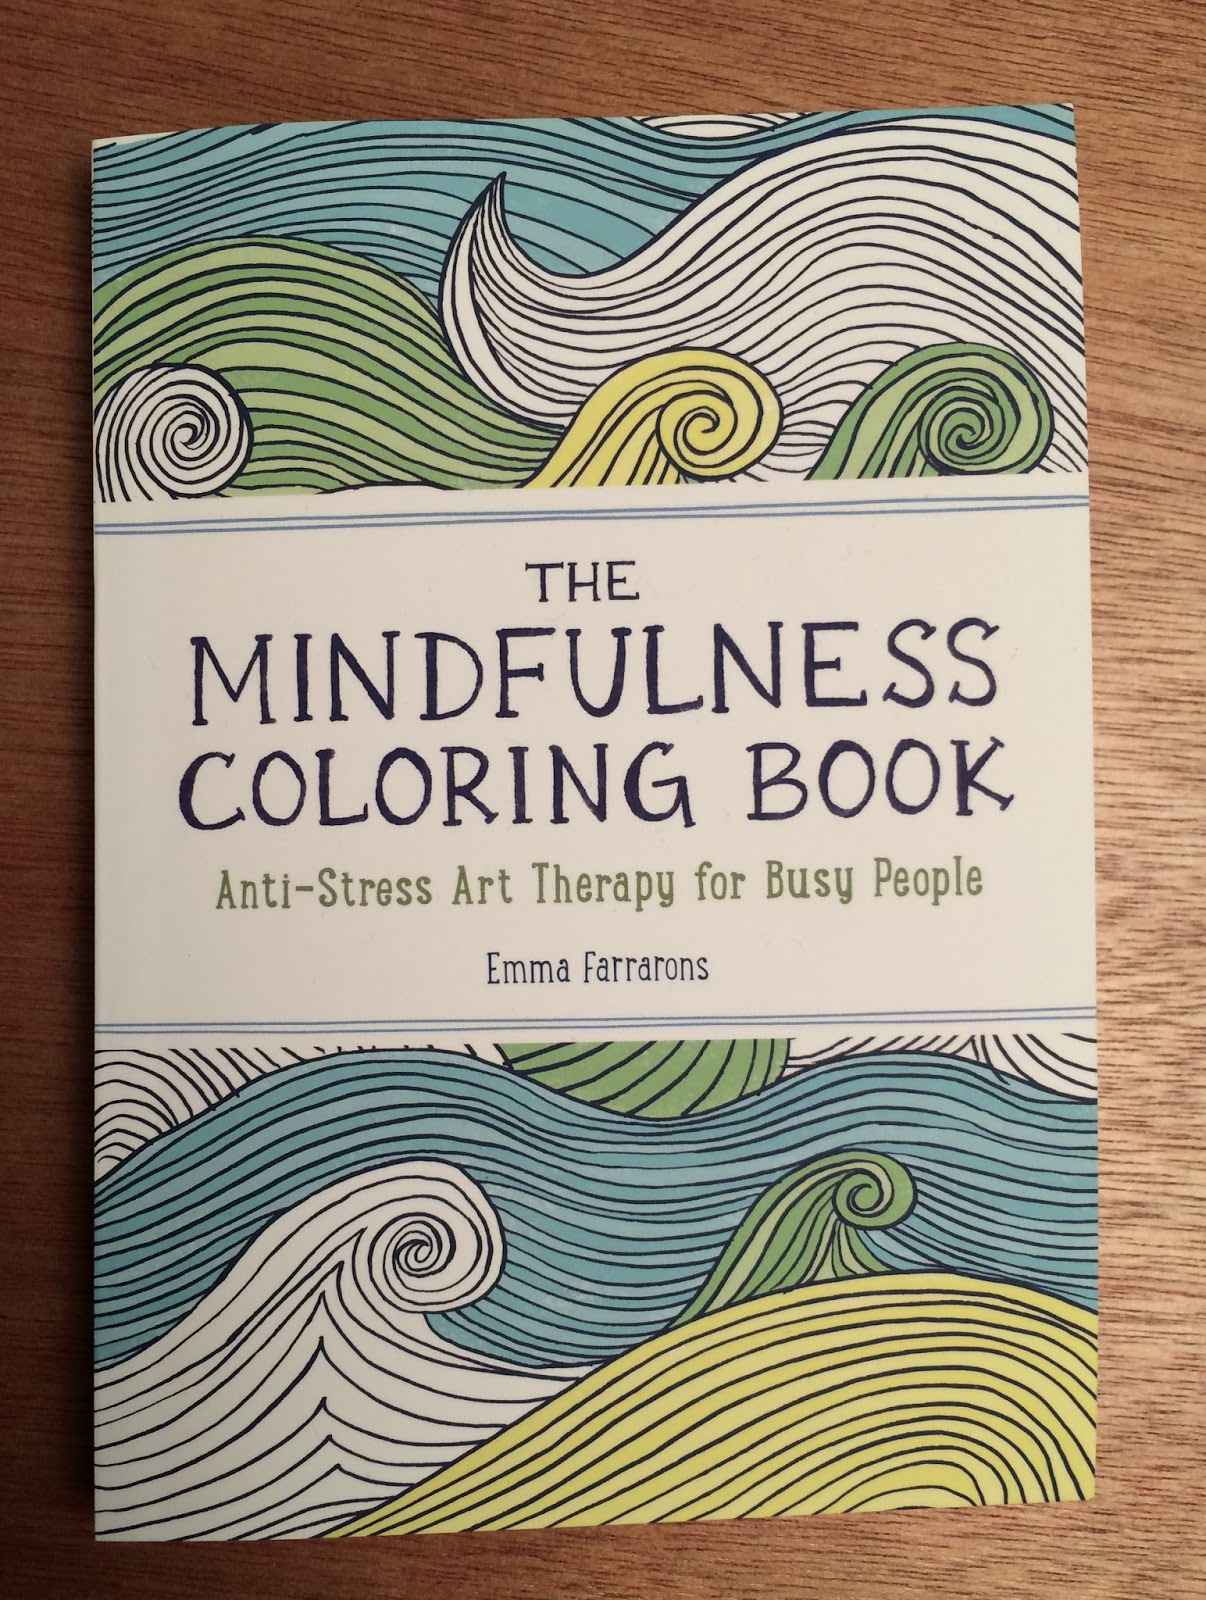 Little book of coloring for mindfulness - Another Great Christmas Gift Was The Mindfulness Coloring Book From Paul It S A Sweet Little Book Full Of Patterns And Designs To Color And Play With